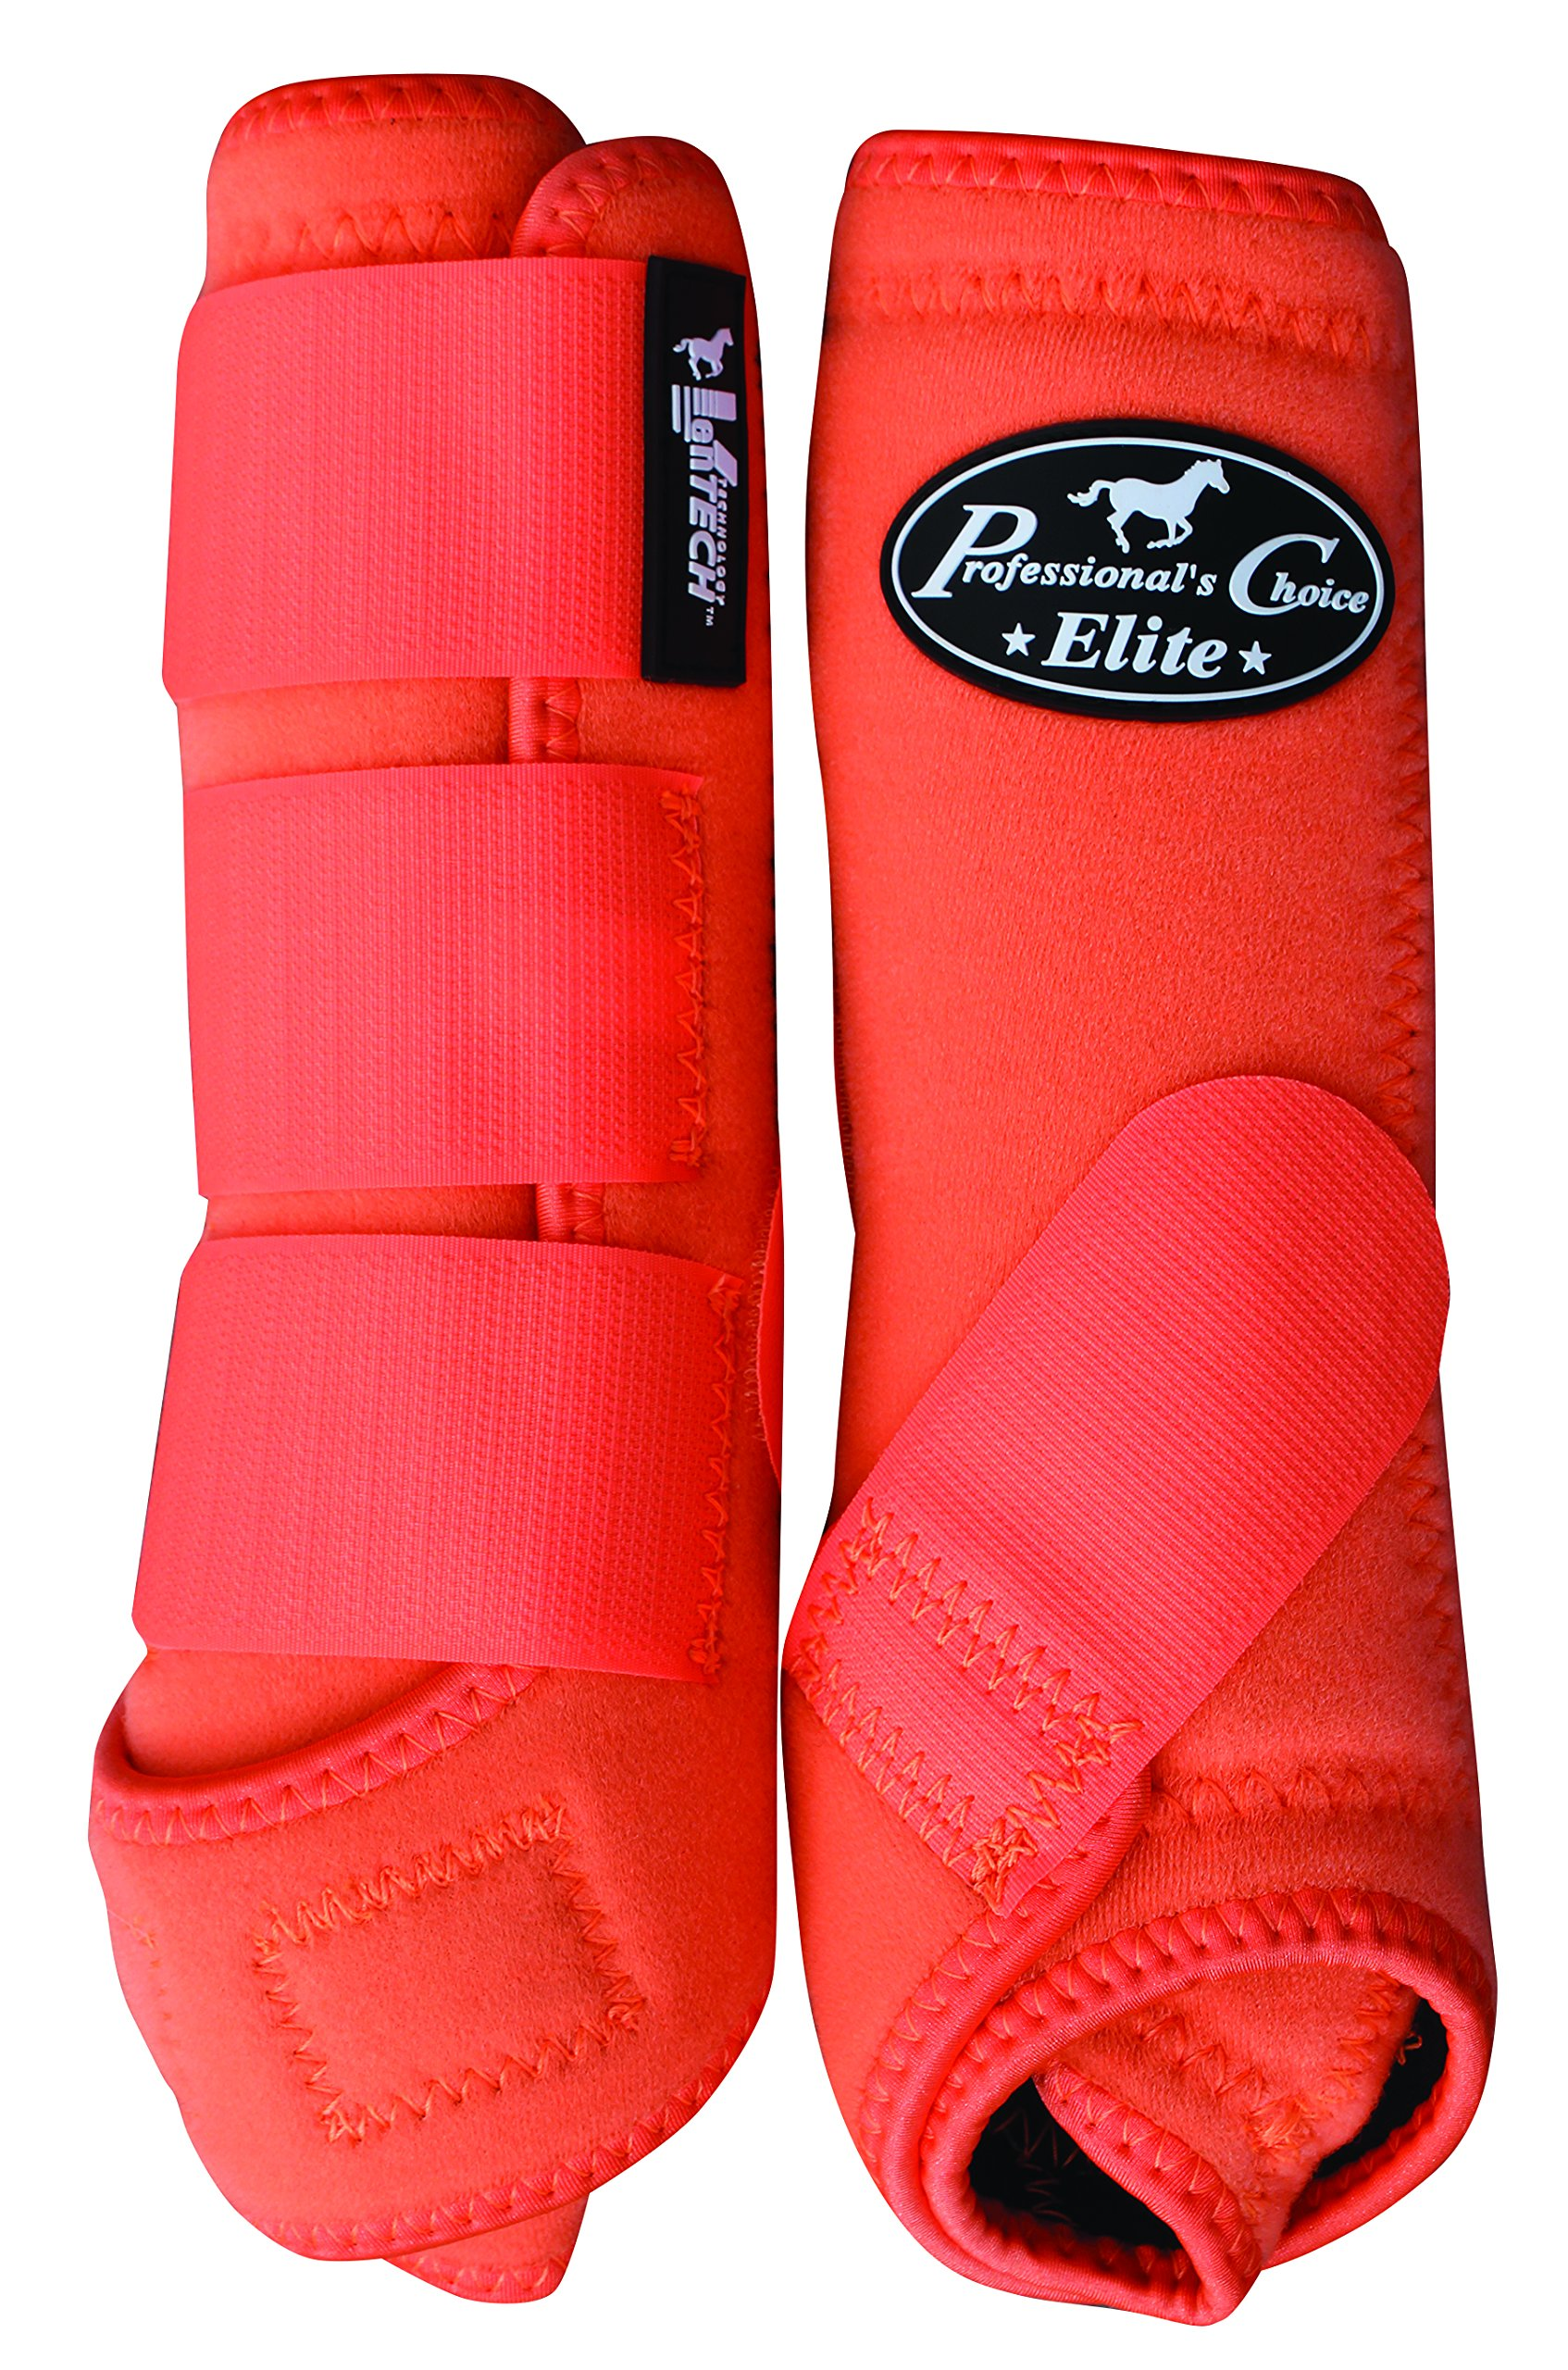 Professionals Choice VenTECH Elite Value 4-Pack Orange Medium Exclusively for OSO1O